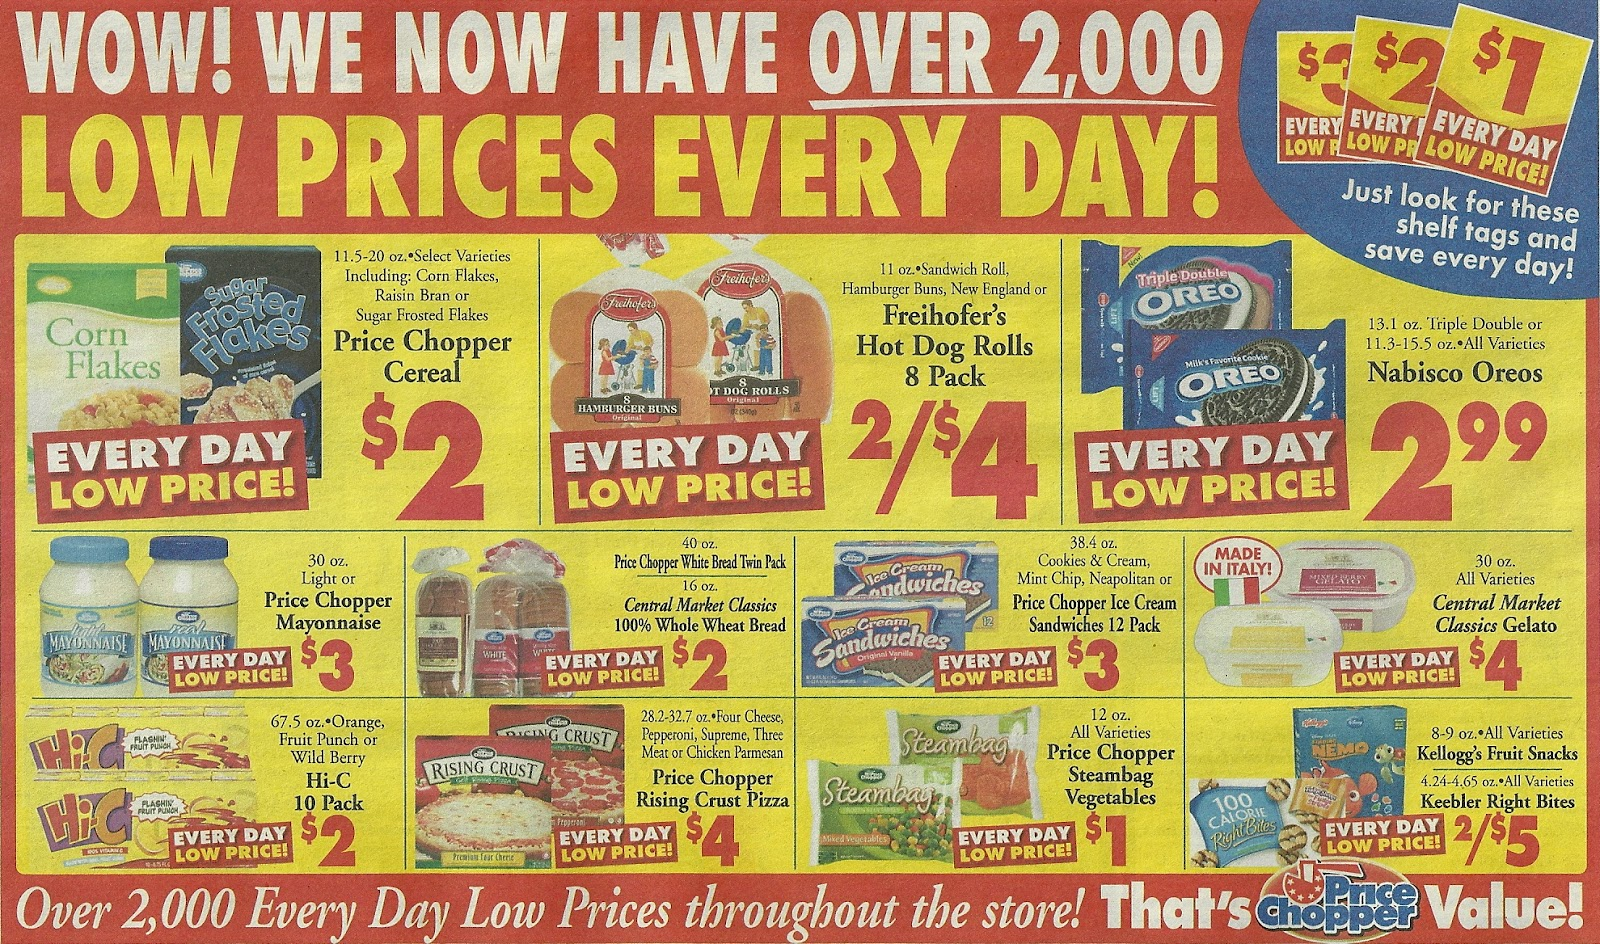 VTCouponer Extreme Couponing in Vermont Price Chopper Ad Scan